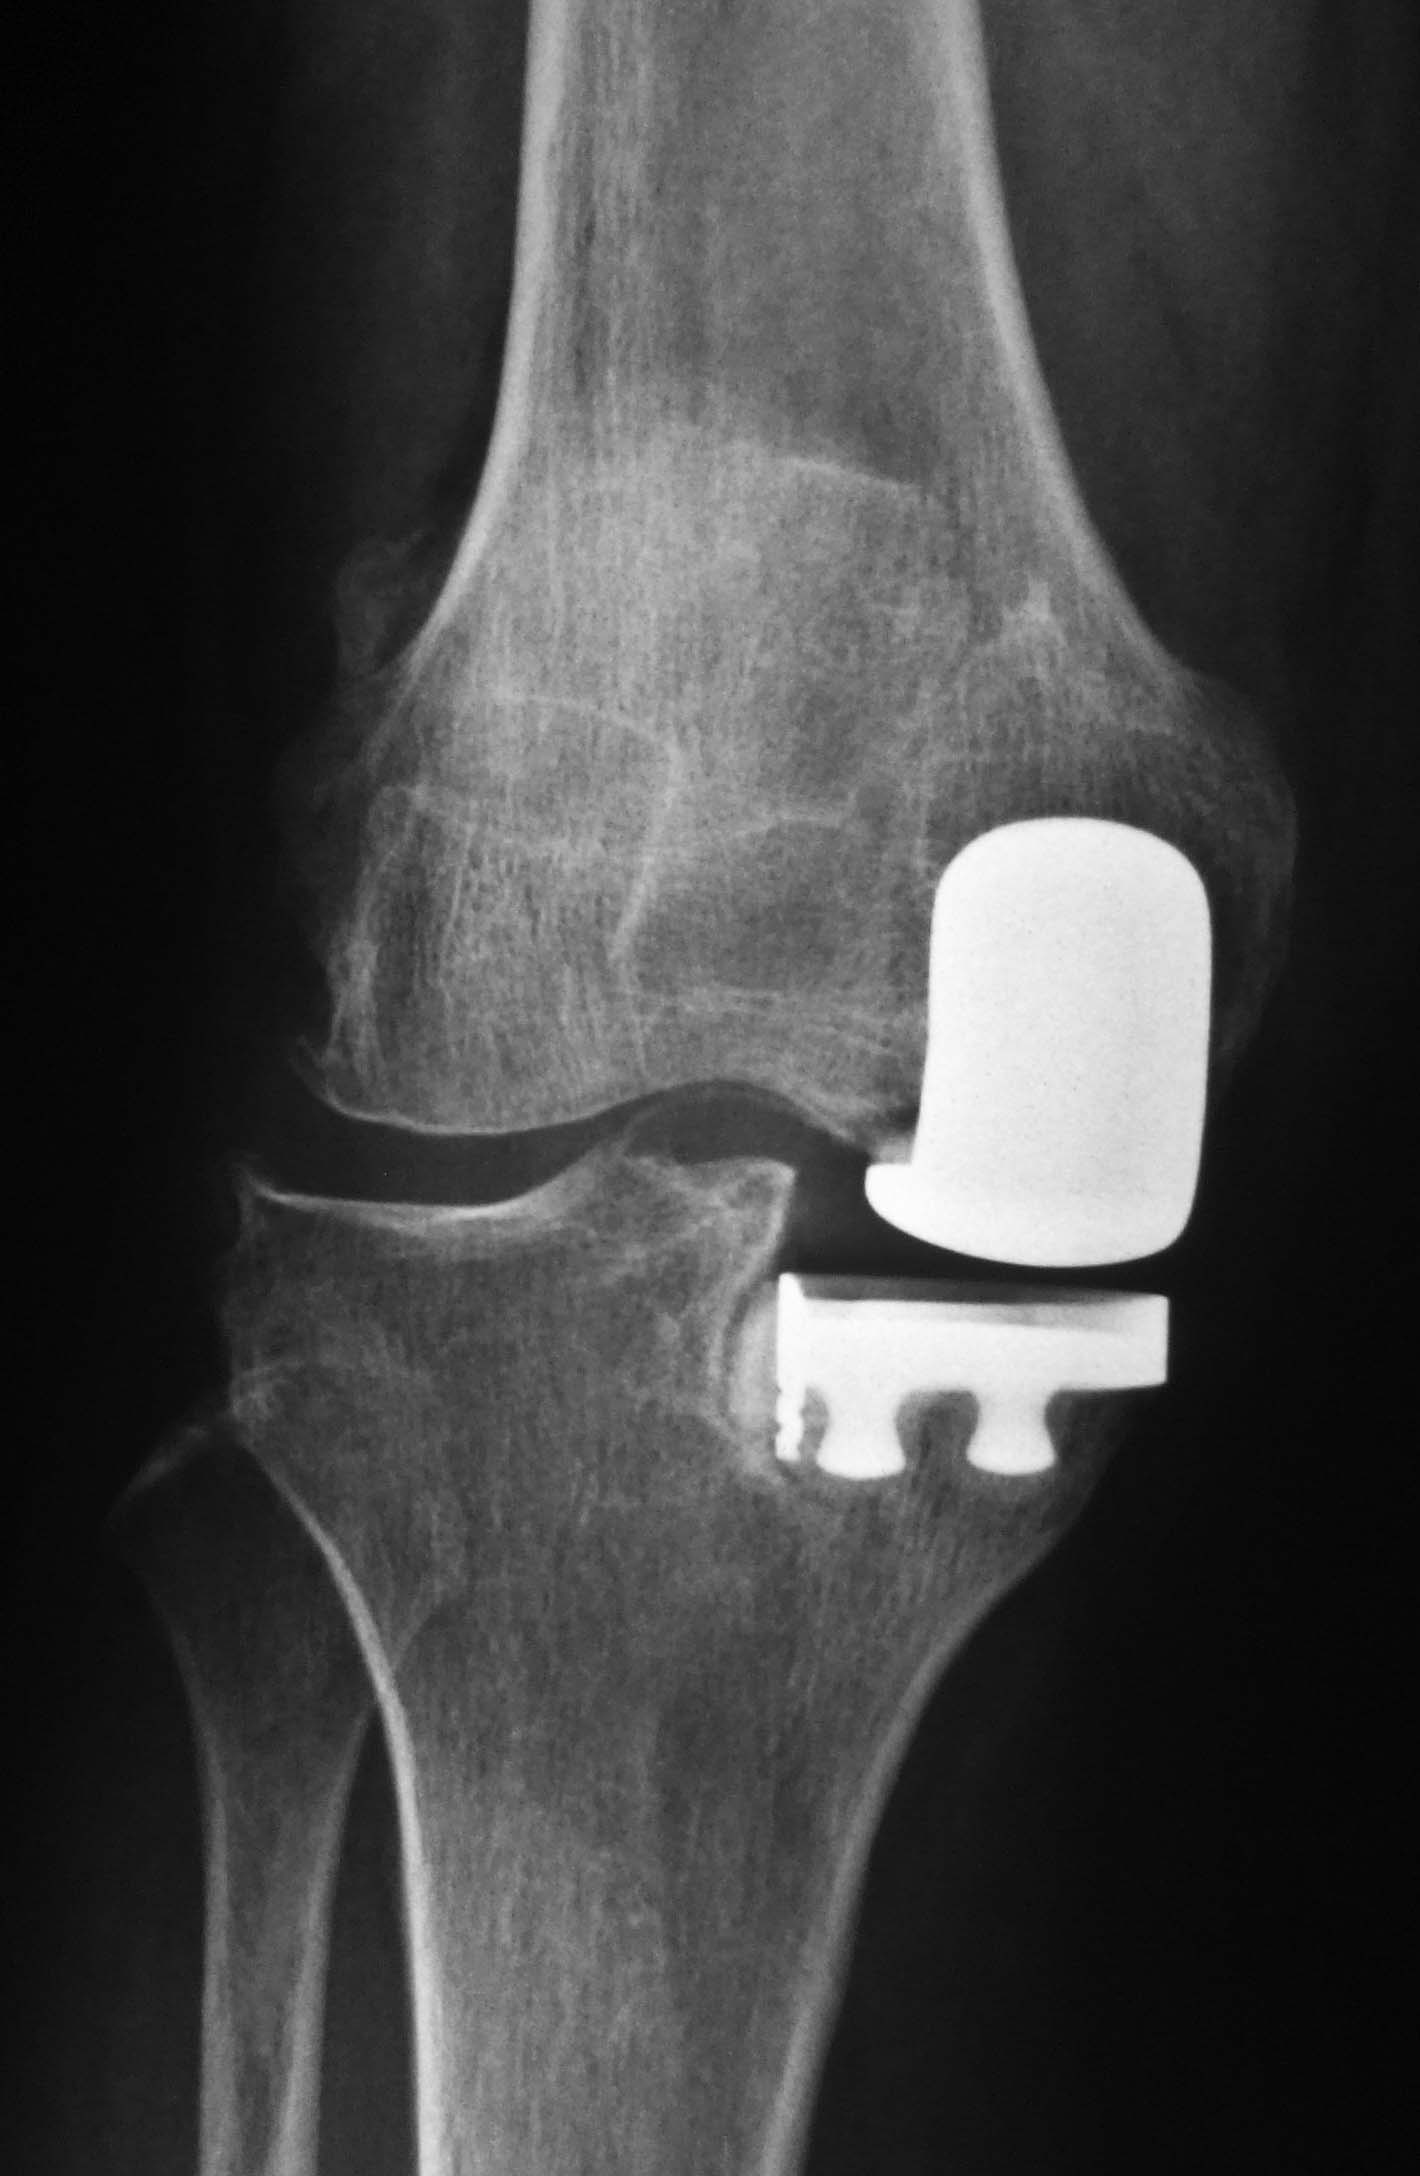 Partial knee replacement for painful knee hc chang orthopaedic uni compartmental publicscrutiny Image collections